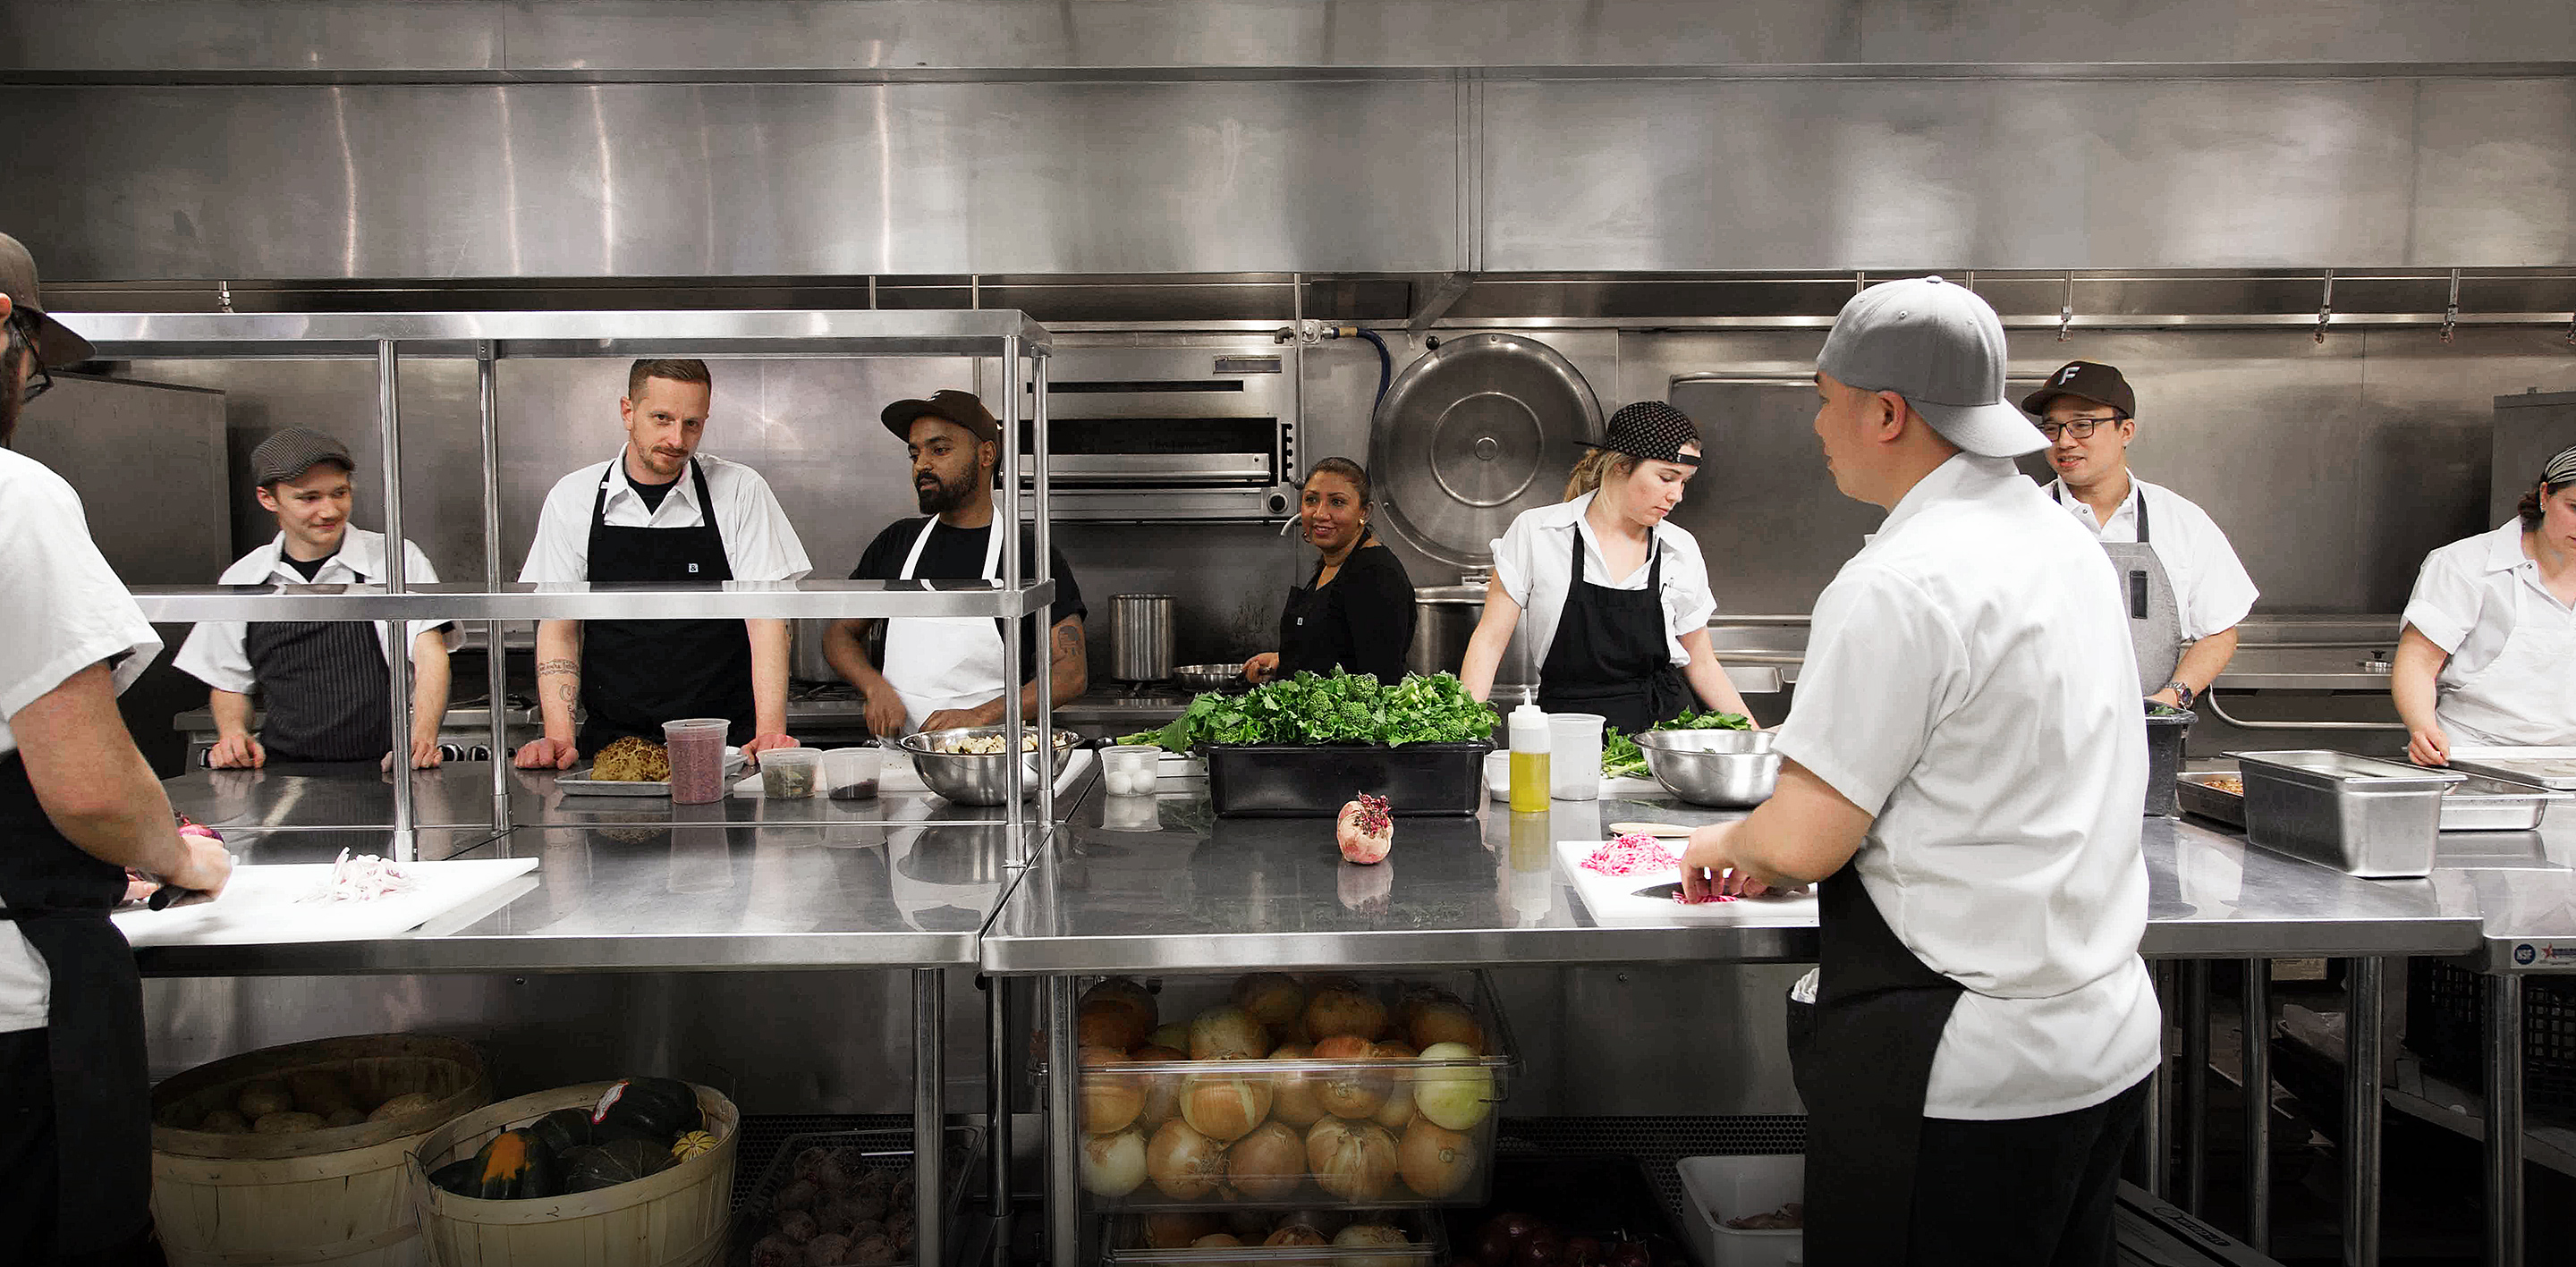 feast and not a conventional restaurant kitchen as your next step